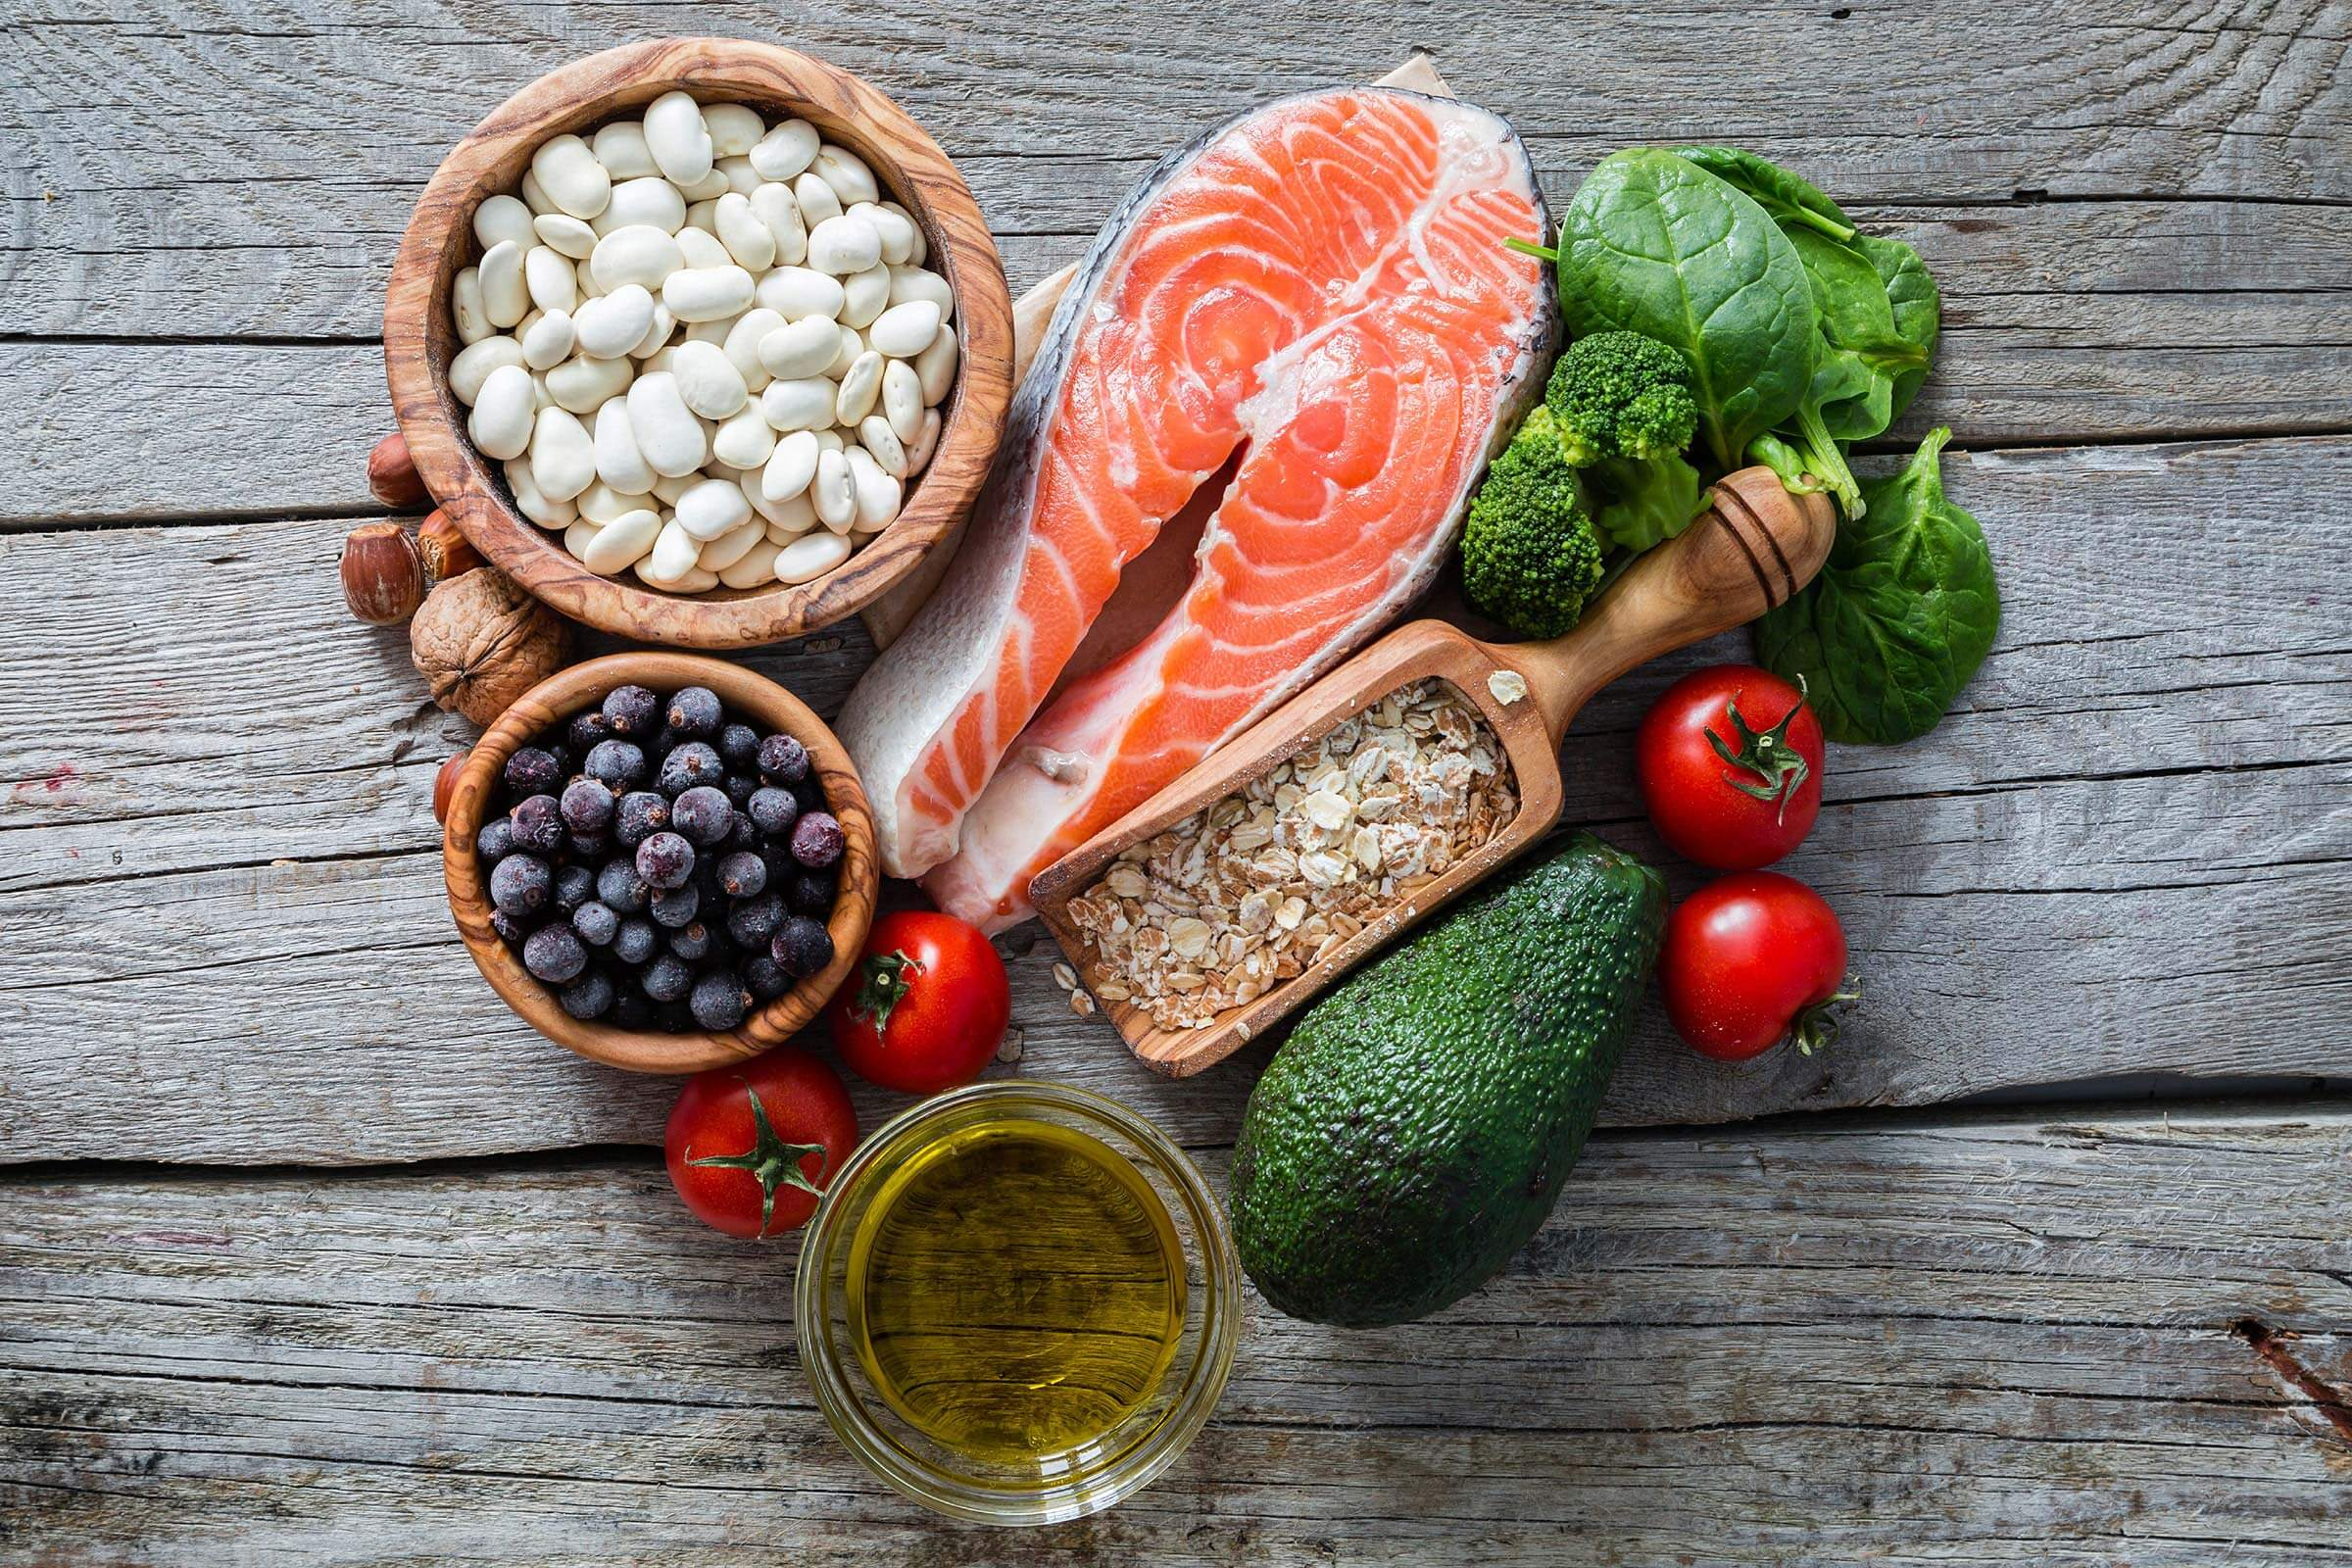 A photo of healthy fats including blueberries, tomatoes, avocado, and beans.